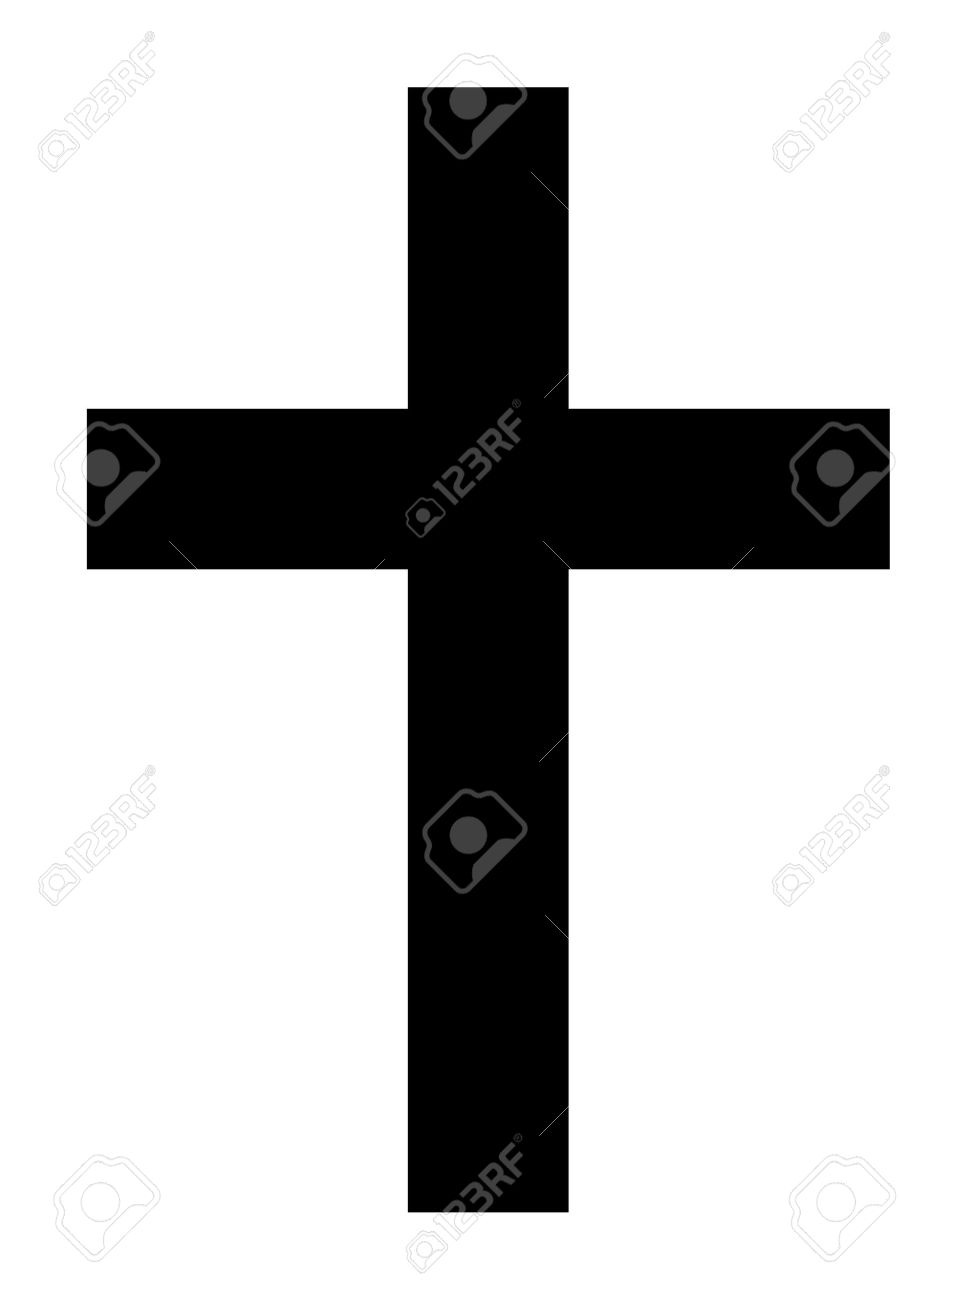 Black silhouette of Christian cross isolated on white background. - 11850030